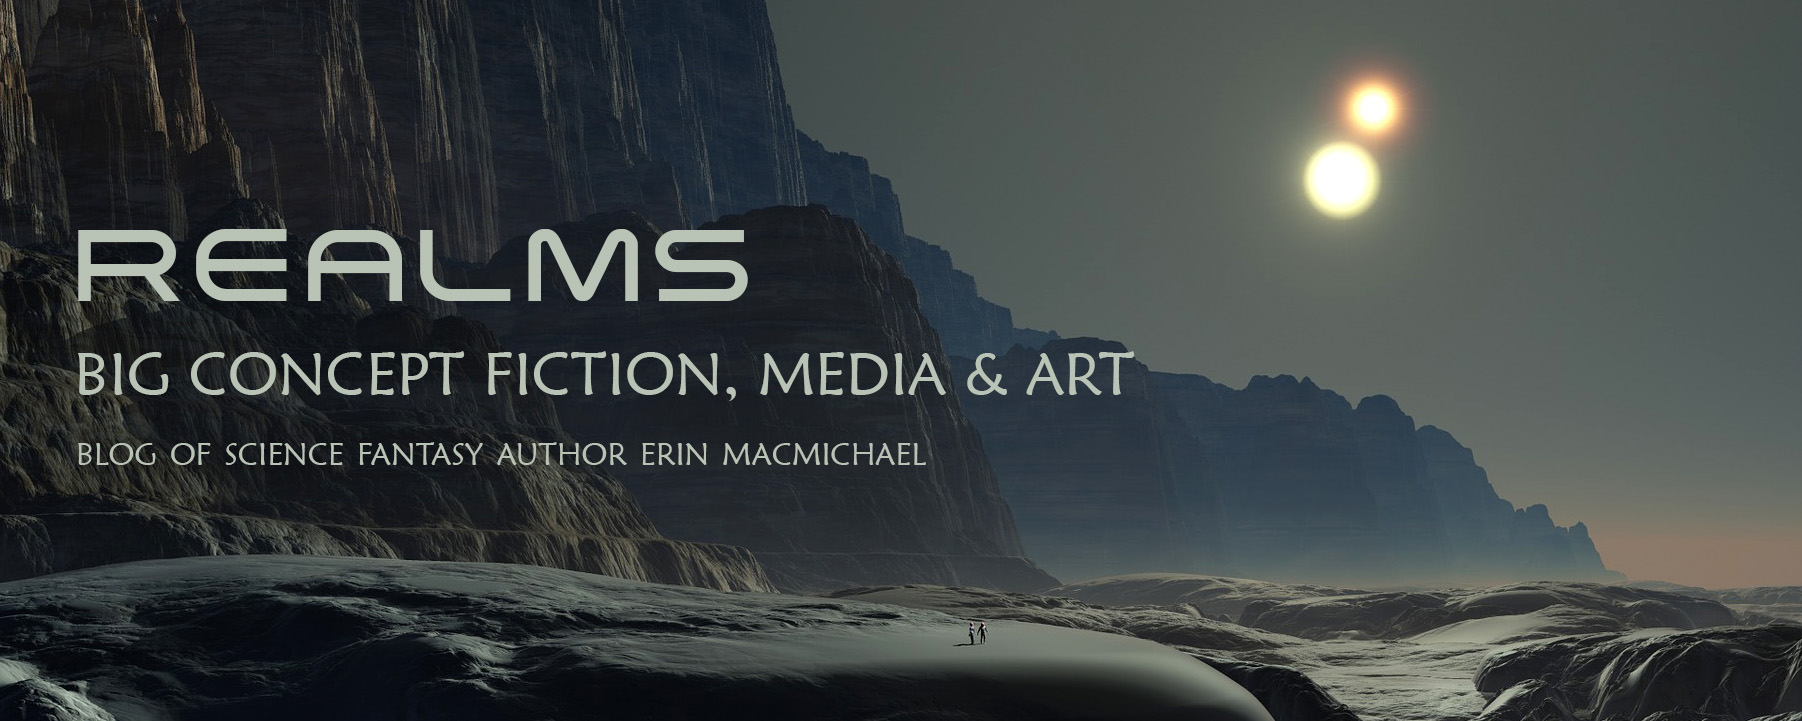 Realms: Blog of Science Fantasy Author Erin MacMichael